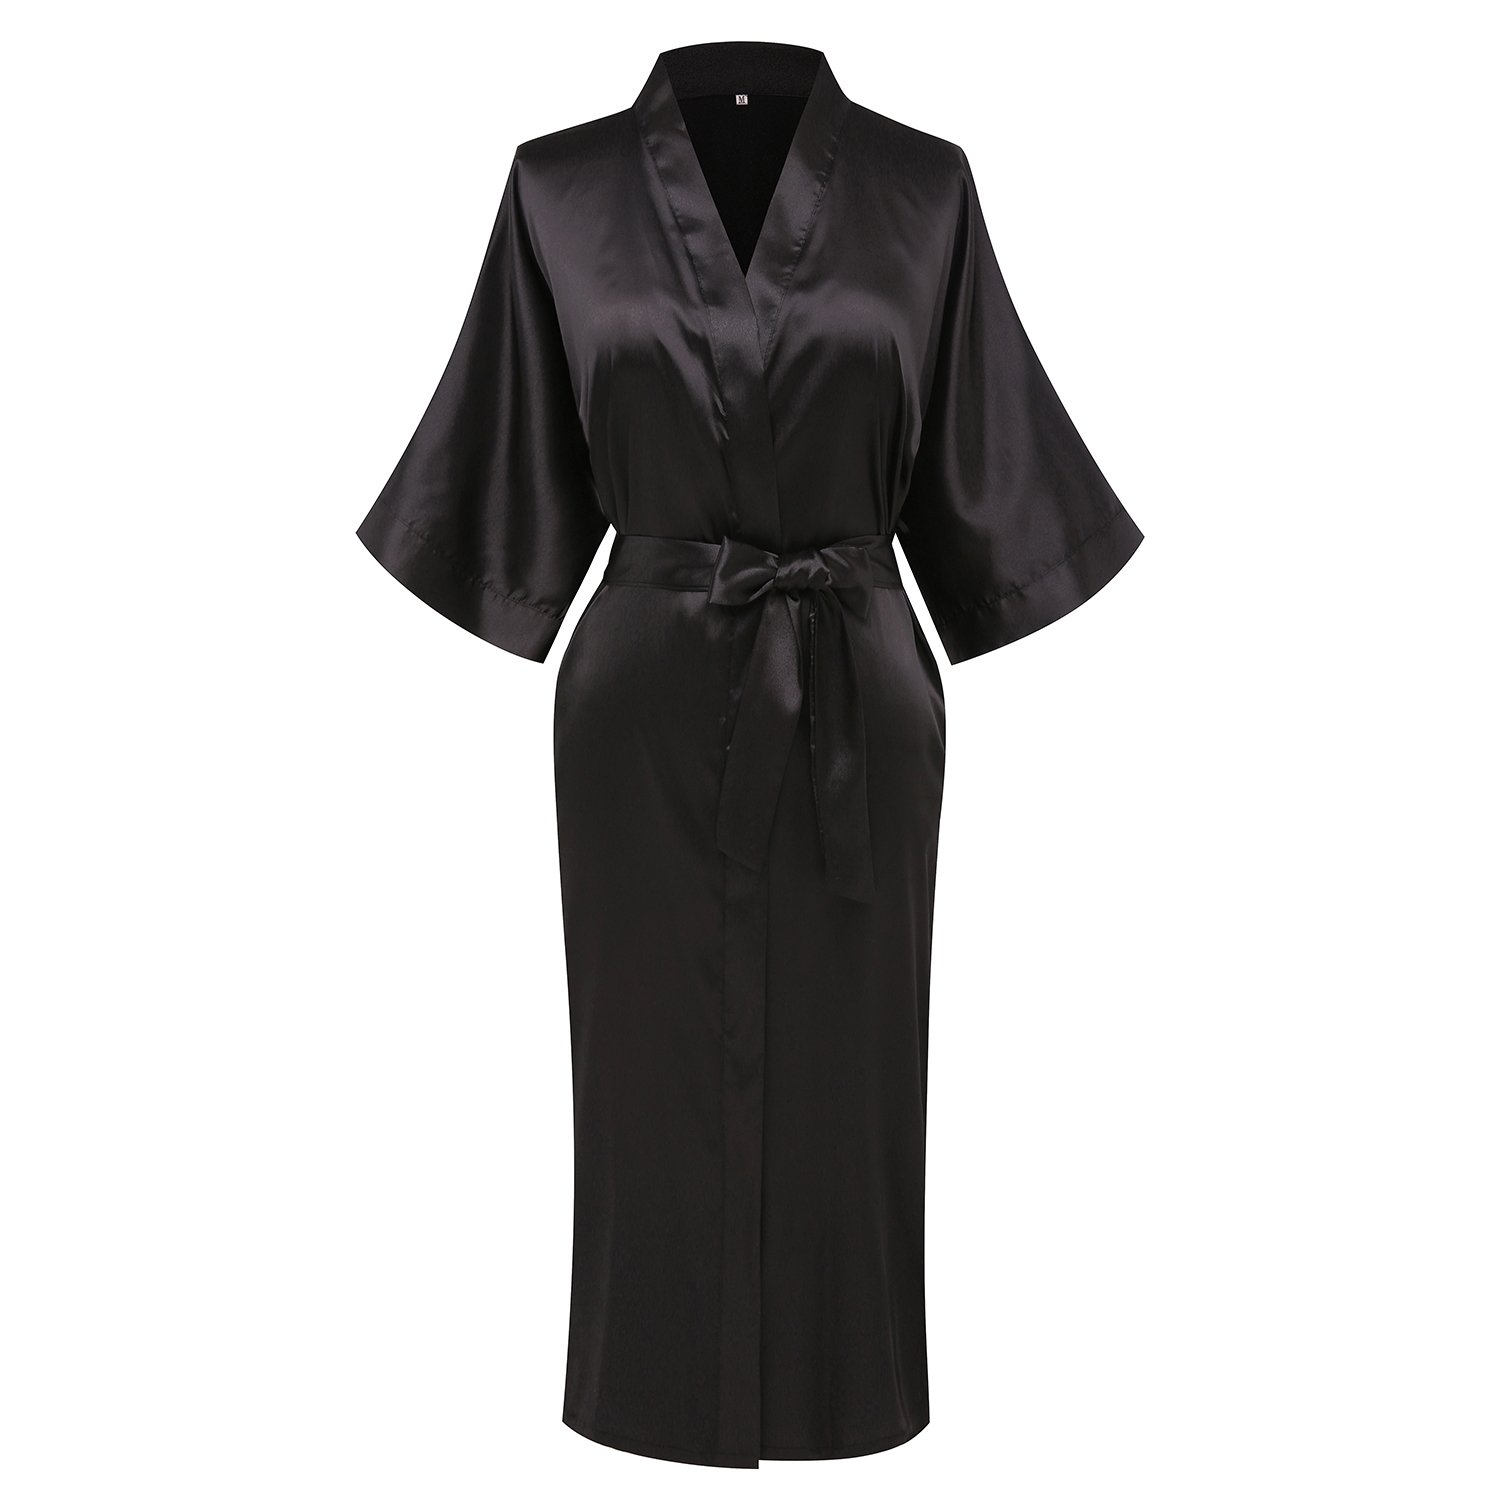 Pure Black3 goodmansam Women's Simplicity Style Nightwear Elegant Kimono Robes, Long